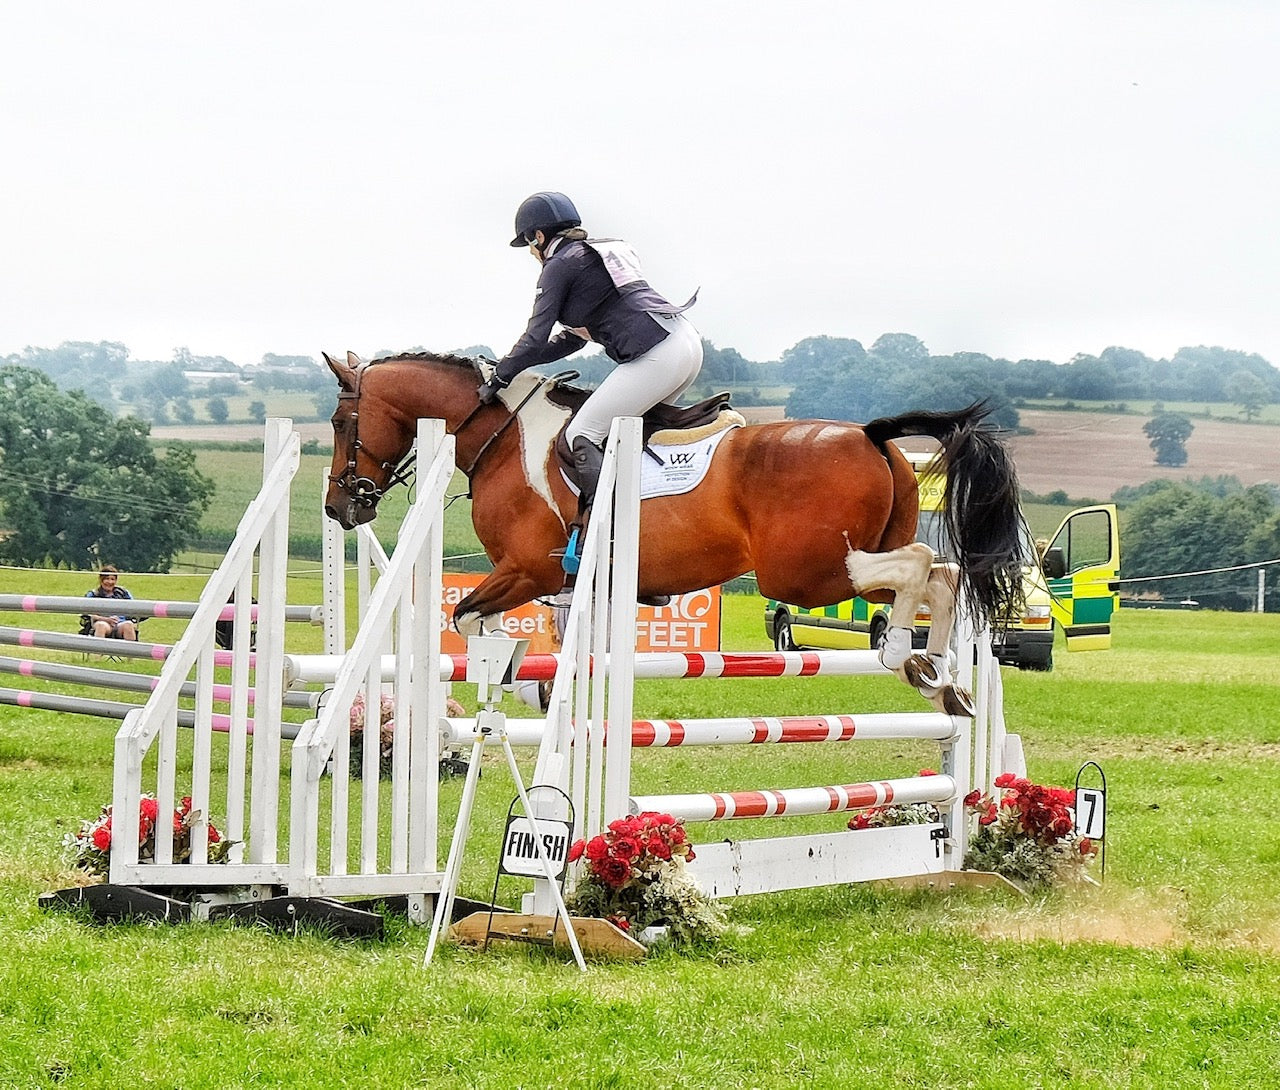 Blue_Chip_Tina_Wallace_Showjumping